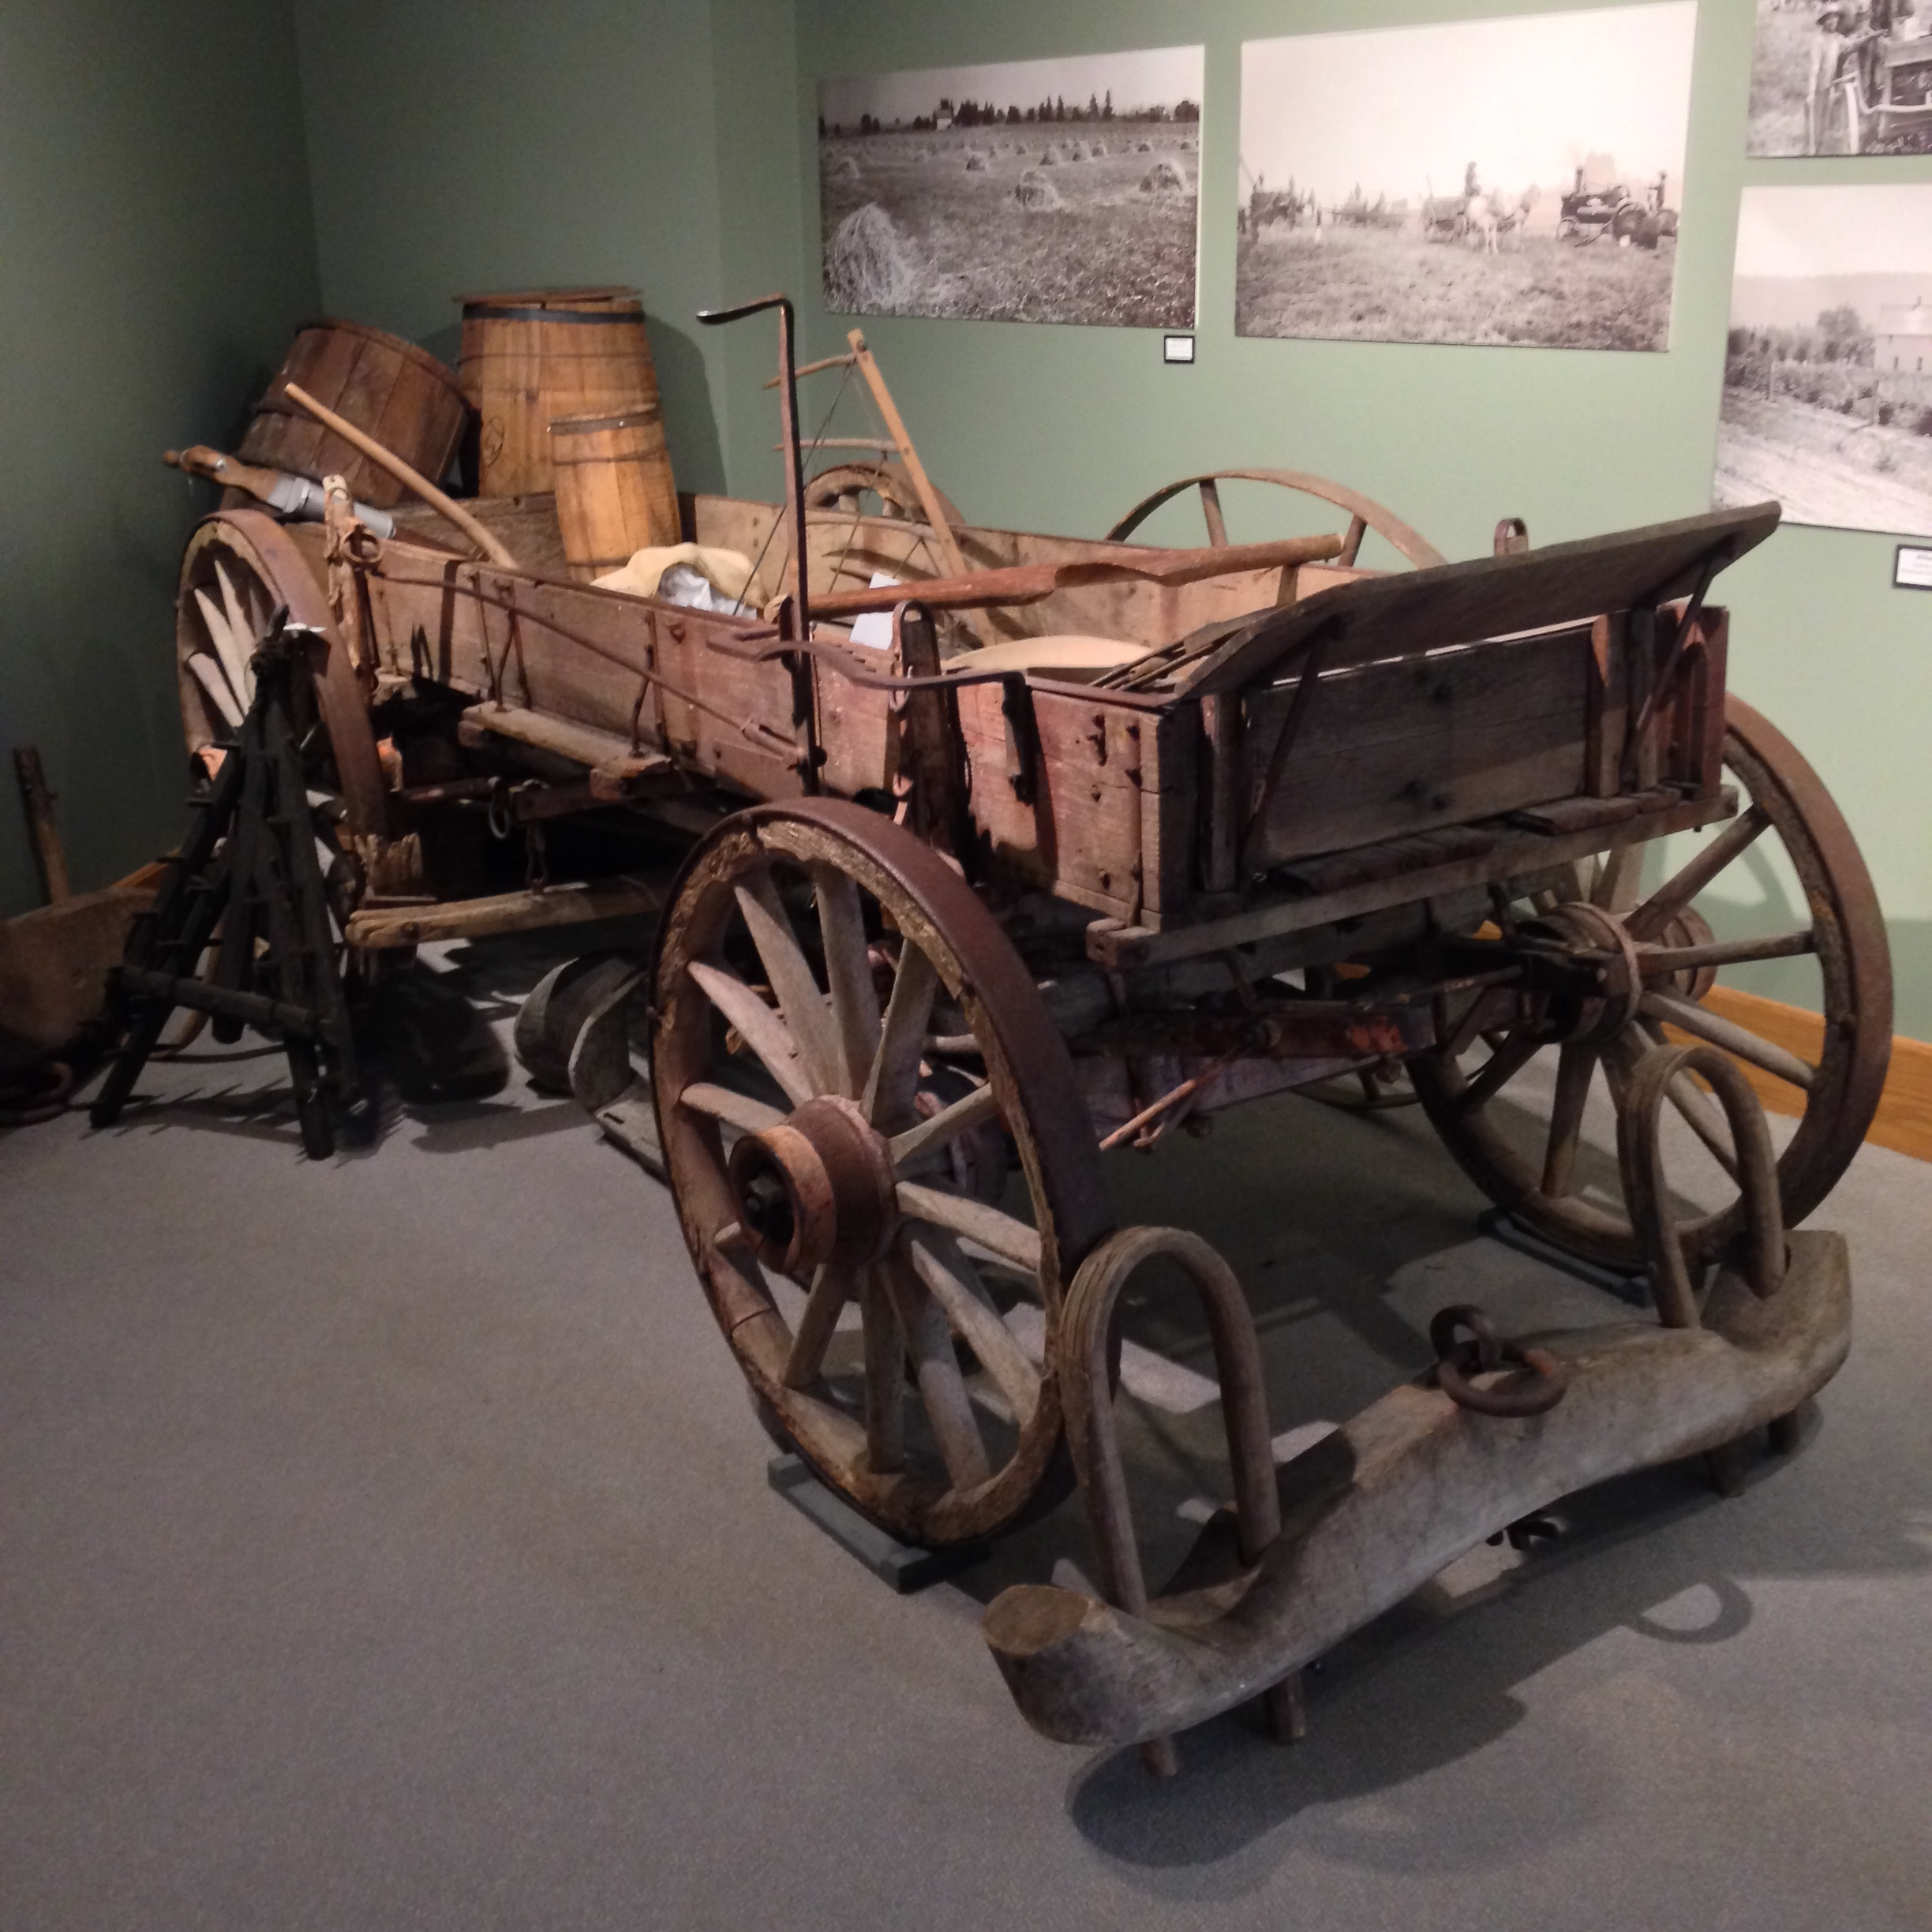 Farm wagons were used for sowing fields, transporting goods, and everyday maintenance within the territory.